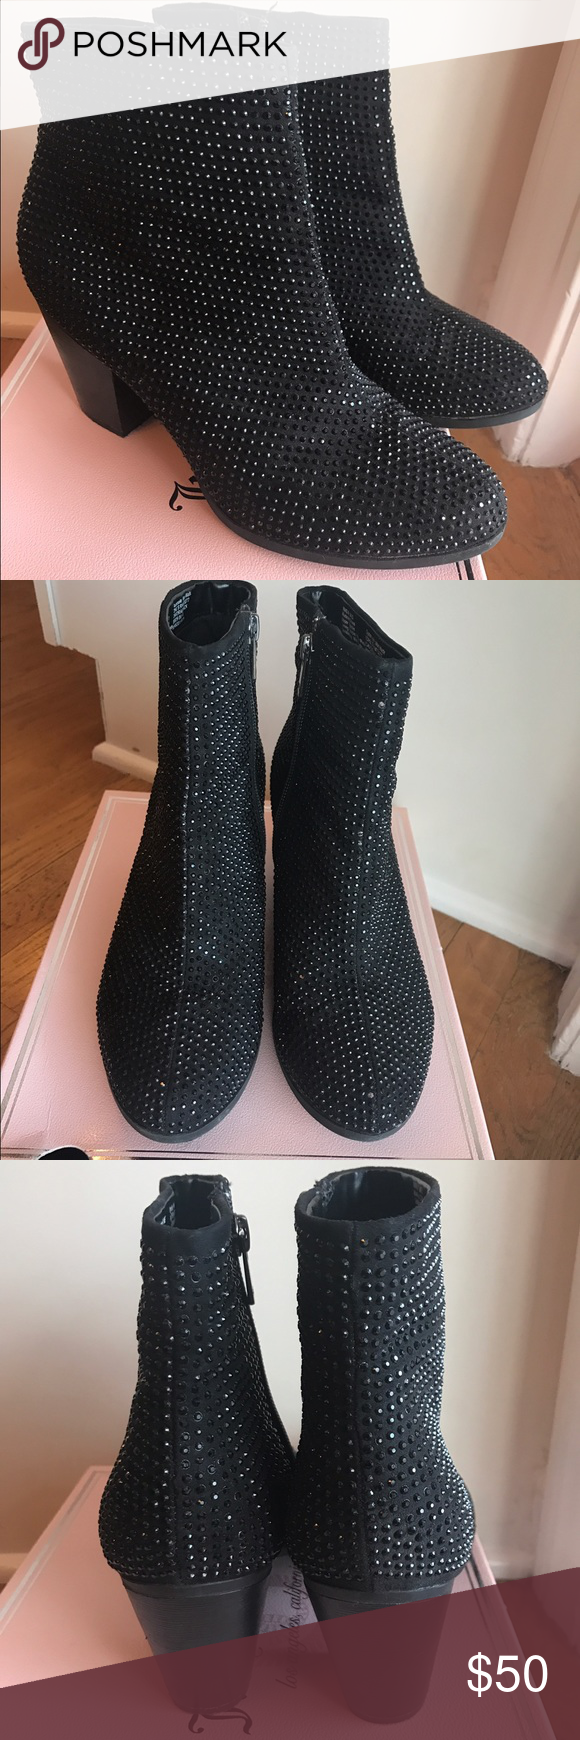 Juicy Couture Bedazzled Rhinstone Black Booties Juicy Couture Bedazzled Rhinestone Black Bootie Heels! These are awesome and they shimmer in the light so pretty. Lightly worn great condition. Microsuede upper, 3 inch heel. Size 8. *NO TRADES* Retail $100 Juicy Couture Shoes Ankle Boots & Booties